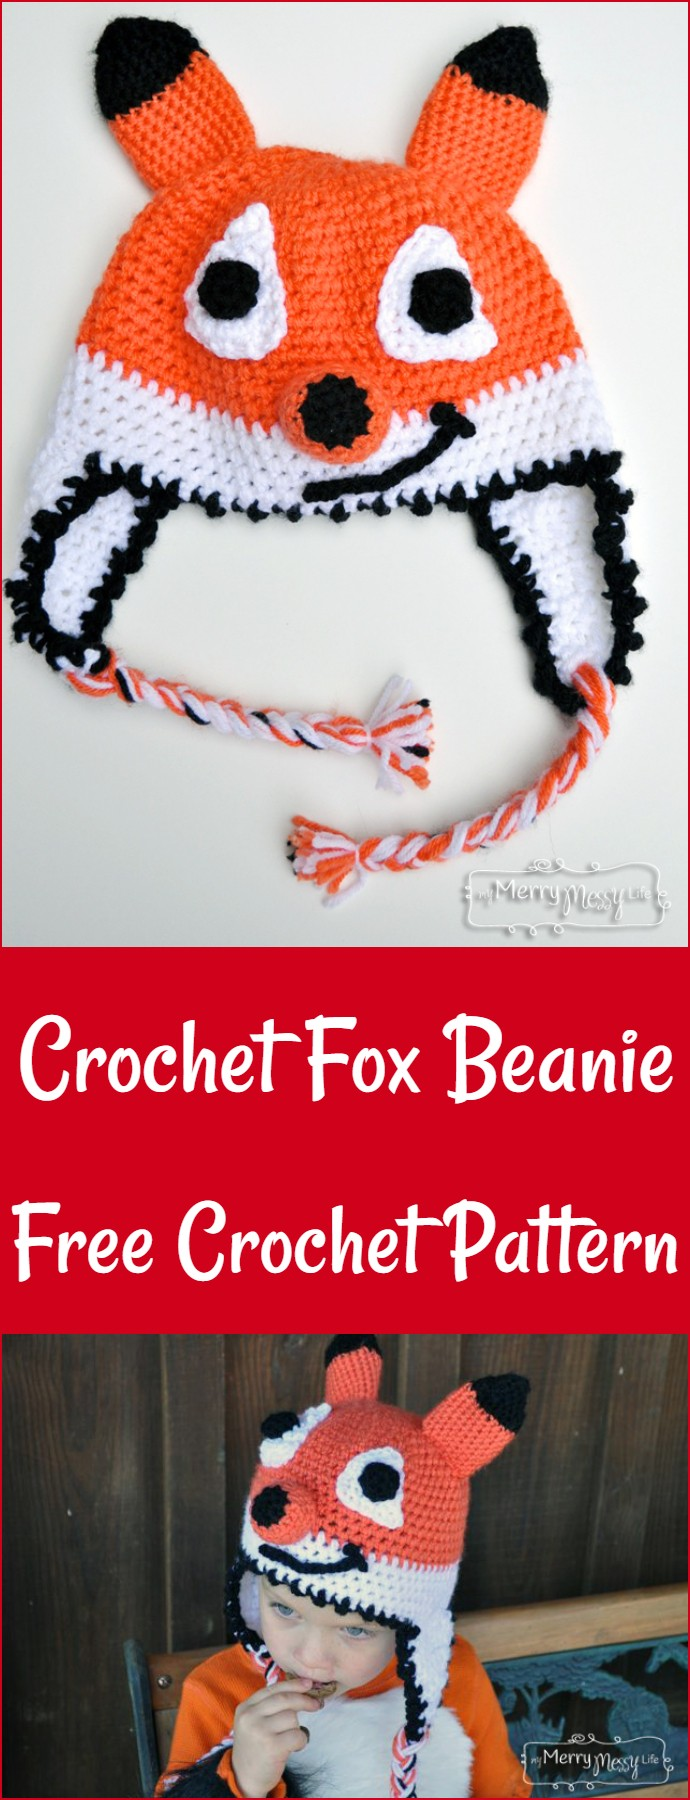 Crochet Fox Beanie Free Crochet Pattern